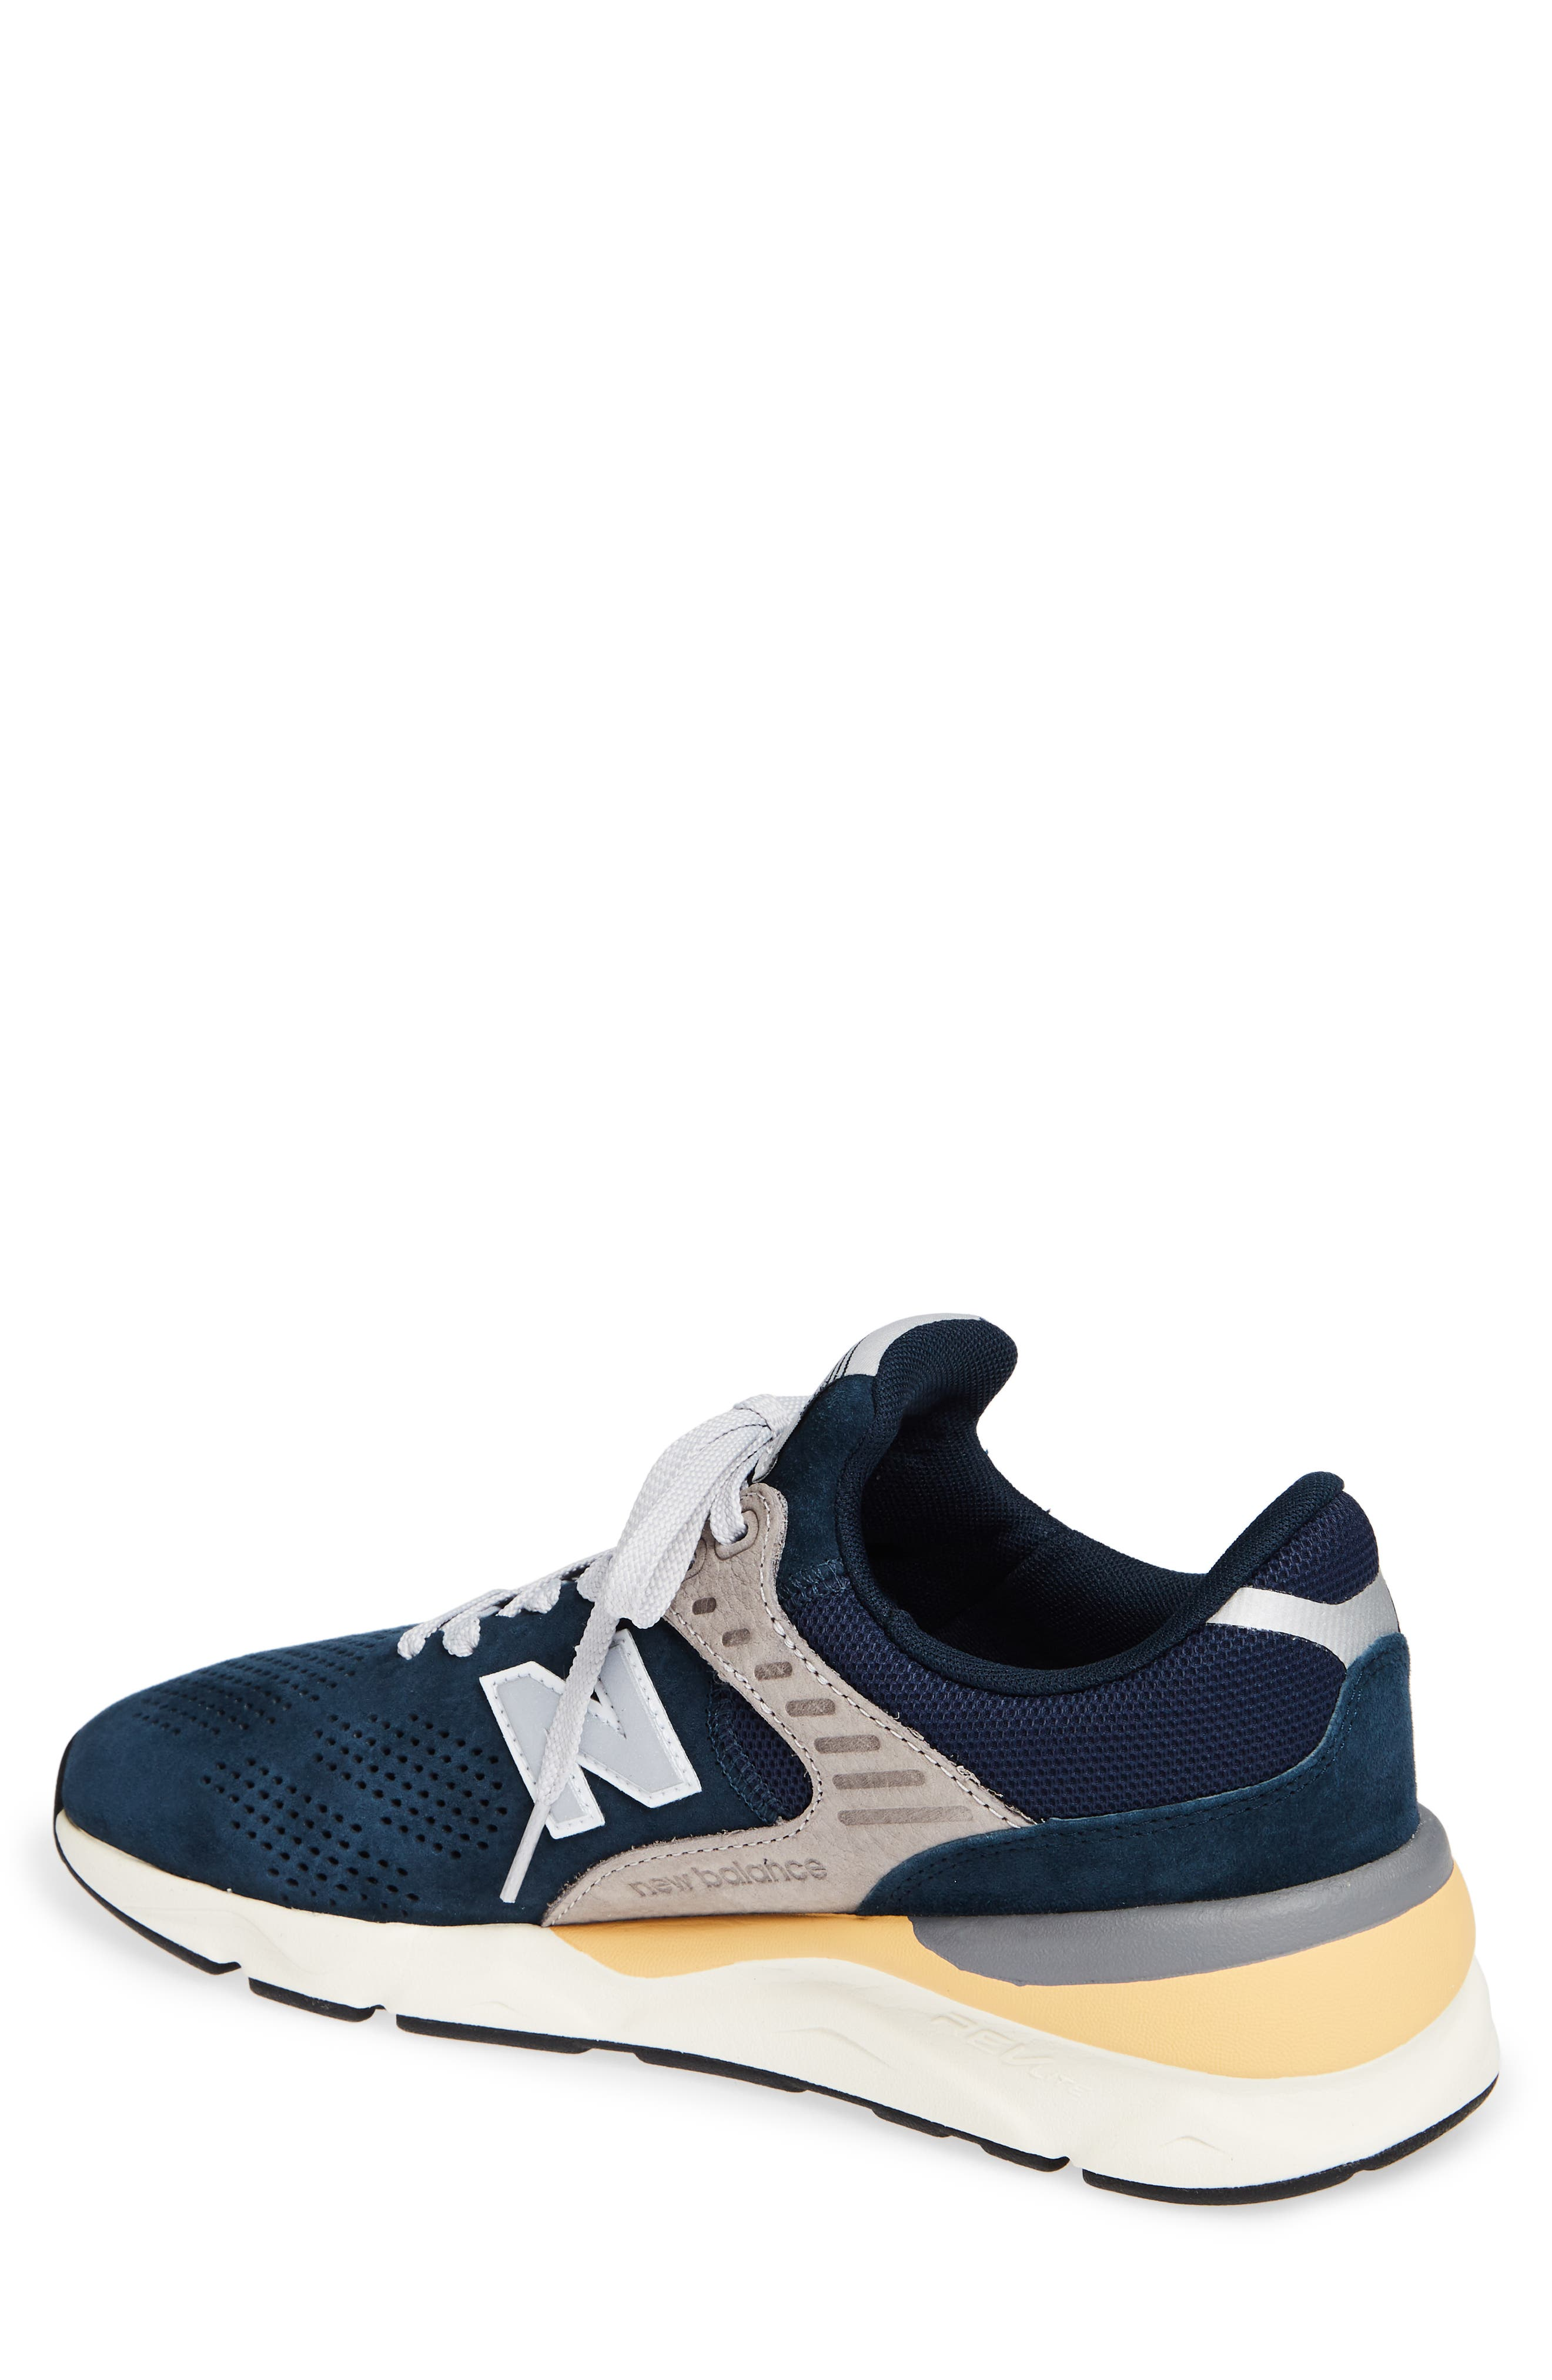 X-90 Leather Sneaker,                             Alternate thumbnail 2, color,                             NAVY SUEDE